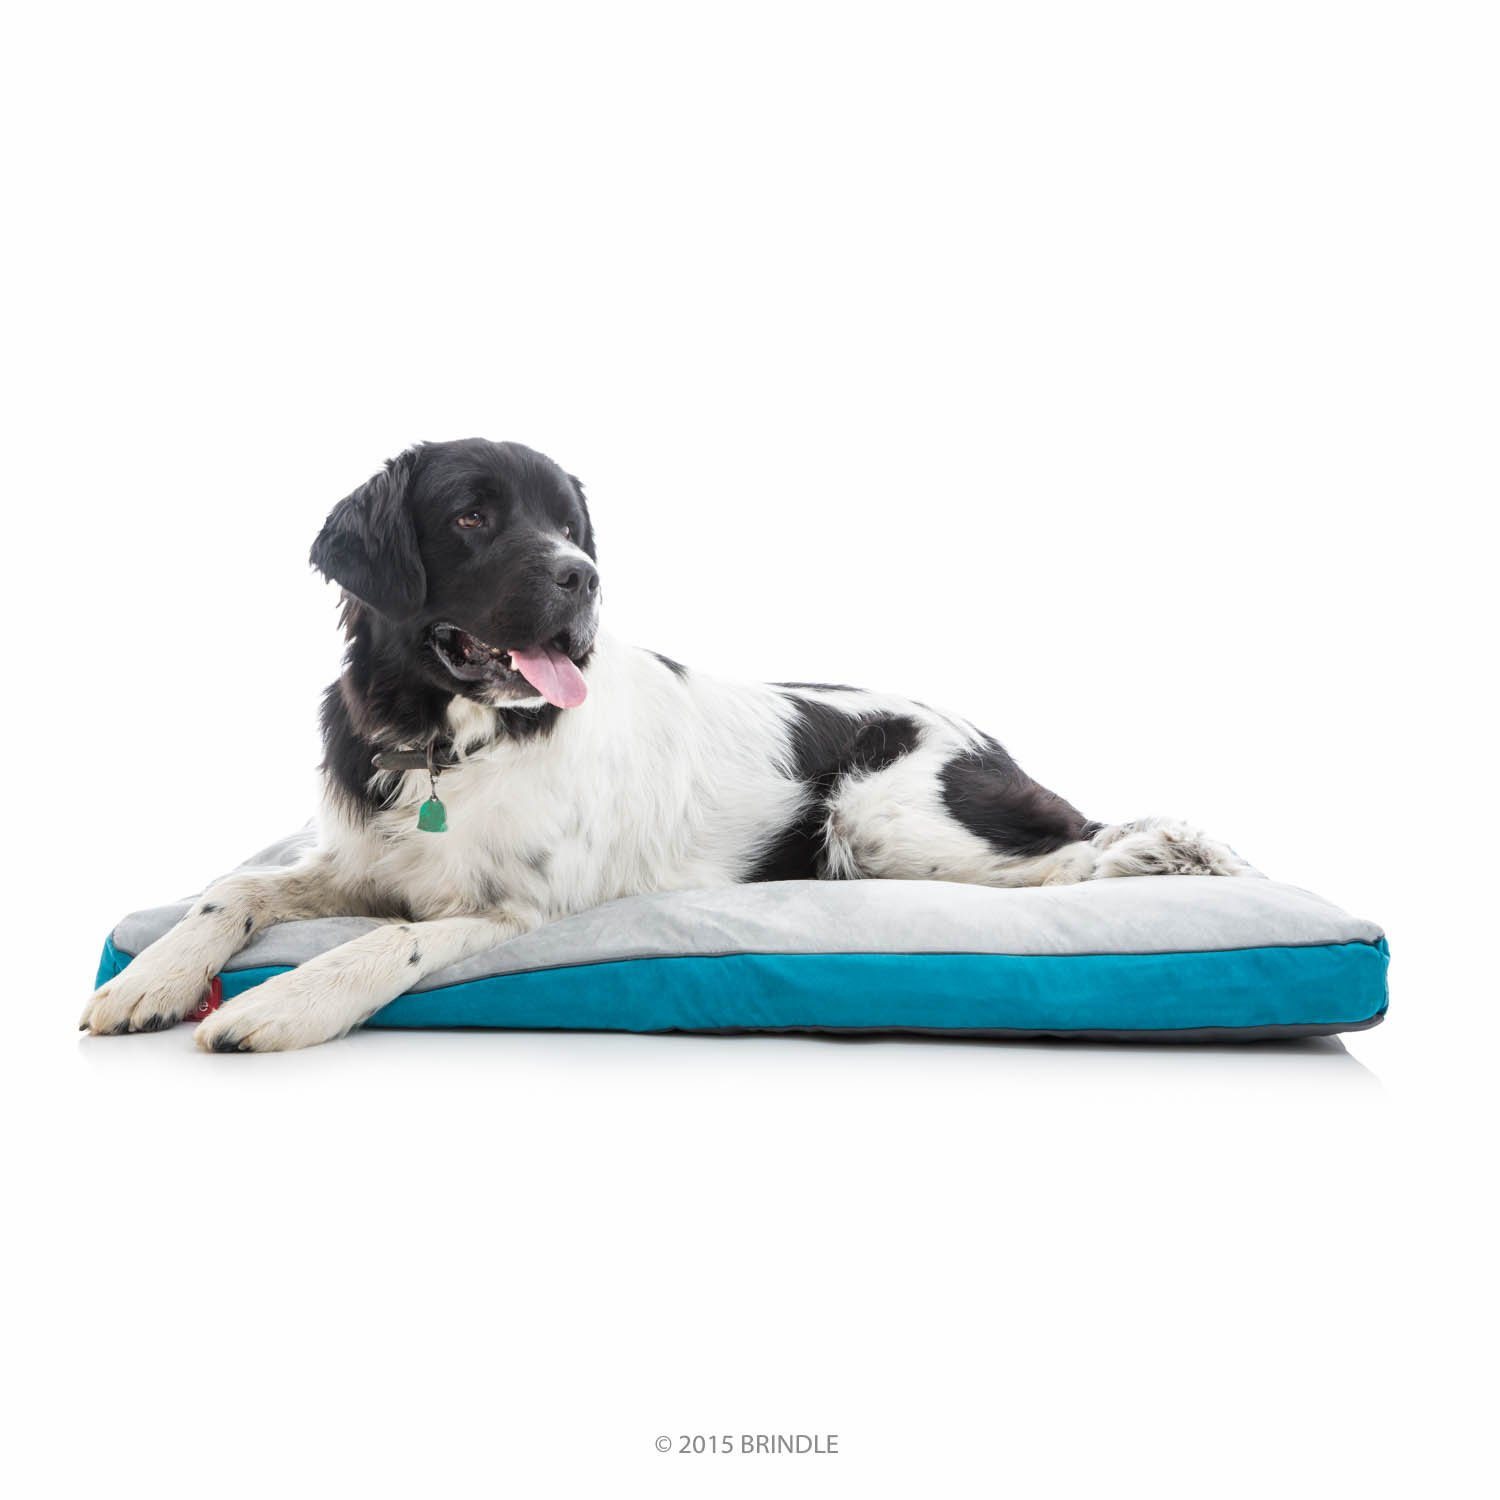 Teal 46in x 28in Teal 46in x 28in Brindle Soft Shredded Memory Foam Dog Bed with Removable Washable Cover 46in x 28in Teal